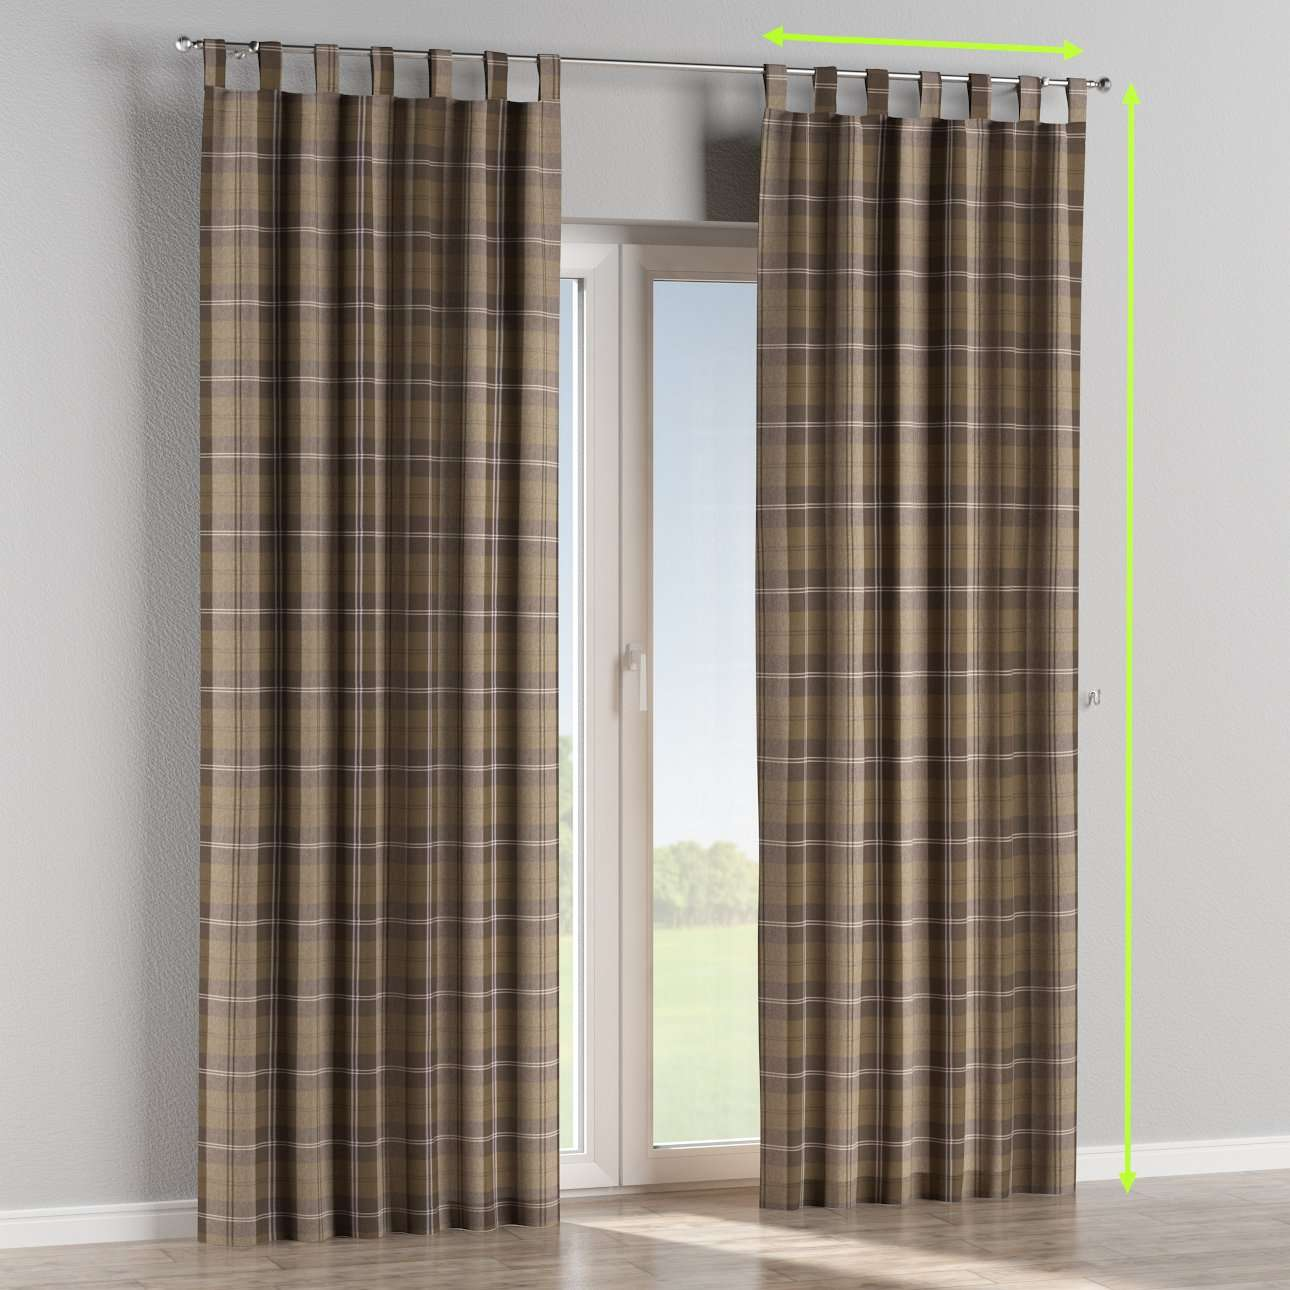 Tab top curtains in collection Edinburgh, fabric: 115-76